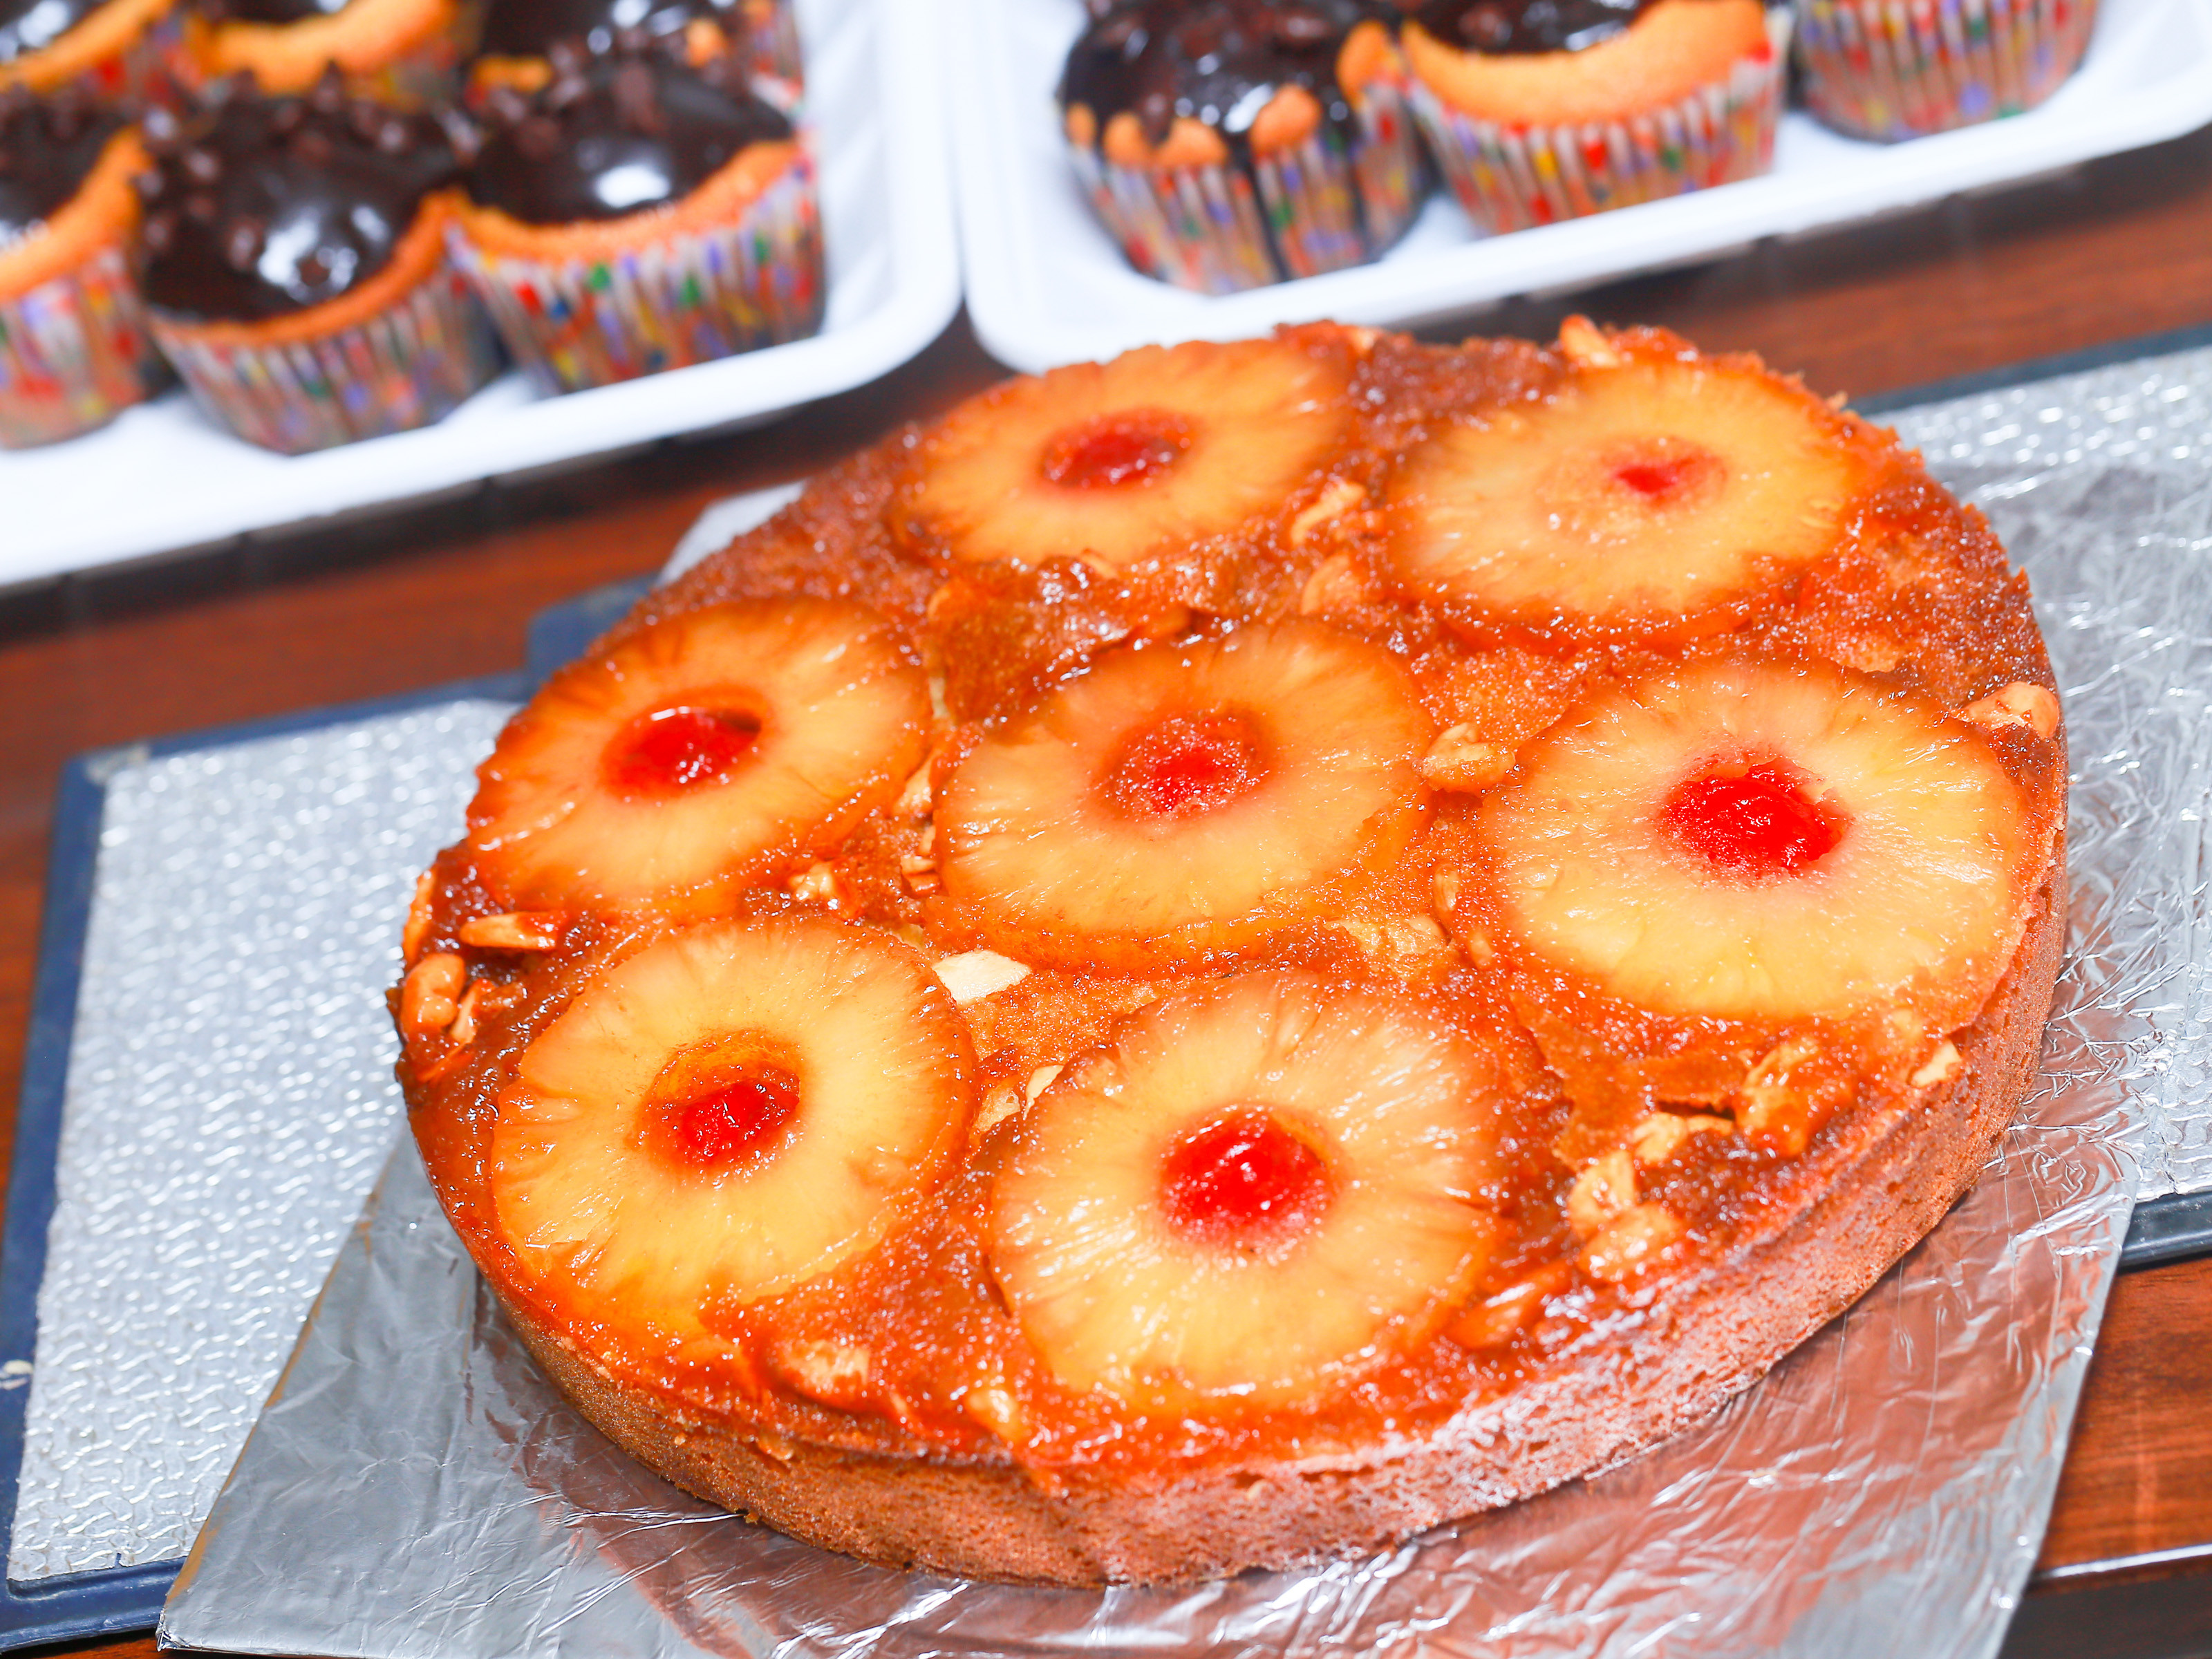 How To Make Pineapple Upside Down Cake  How to Make a Pineapple Upside Down Cake 14 Steps with